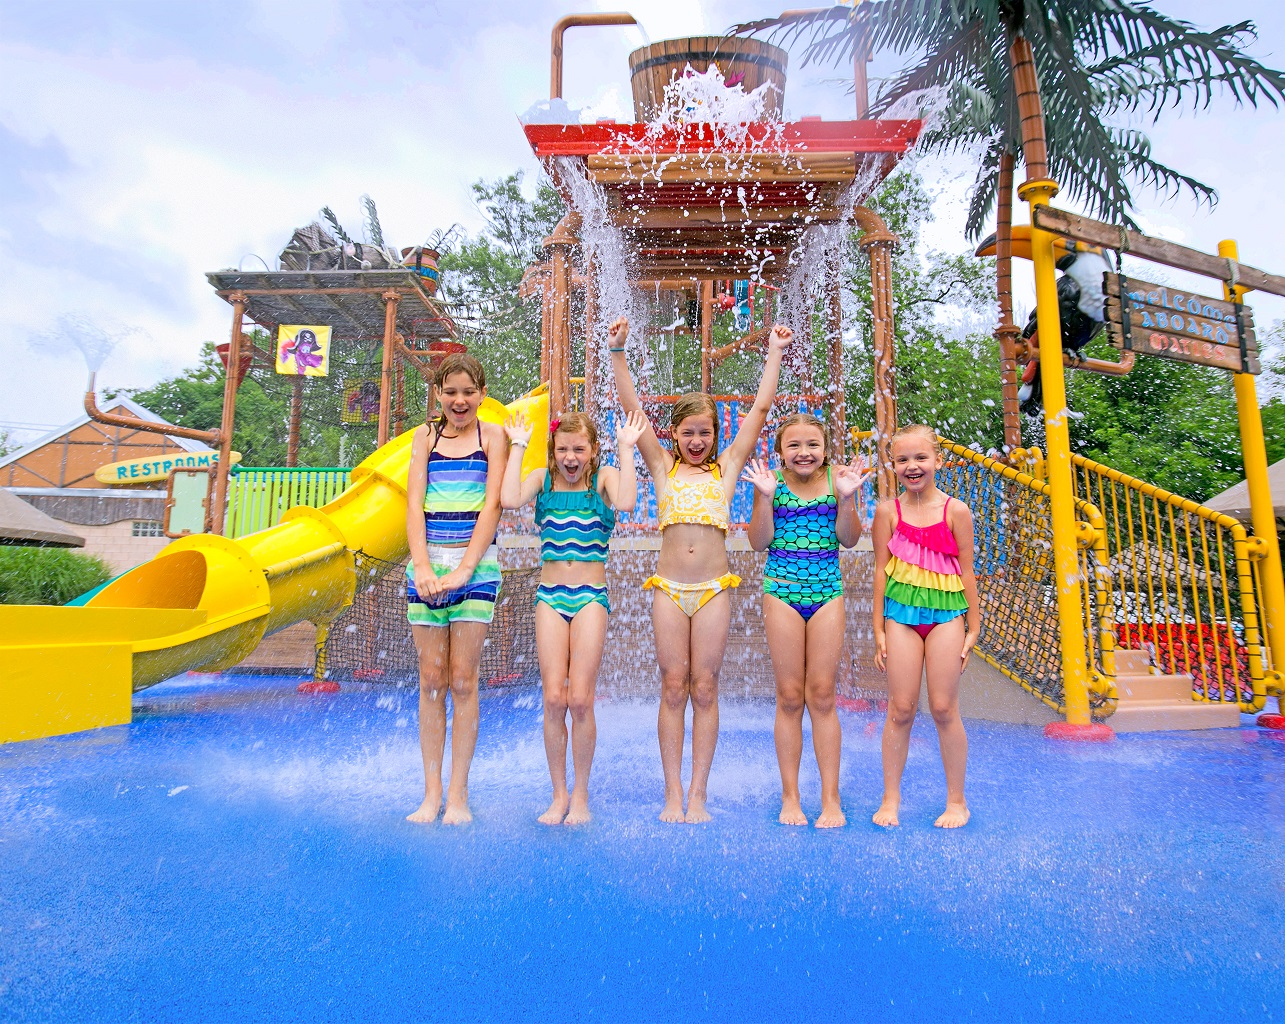 Five girls standing and smiling in front of tipping bucket water play area